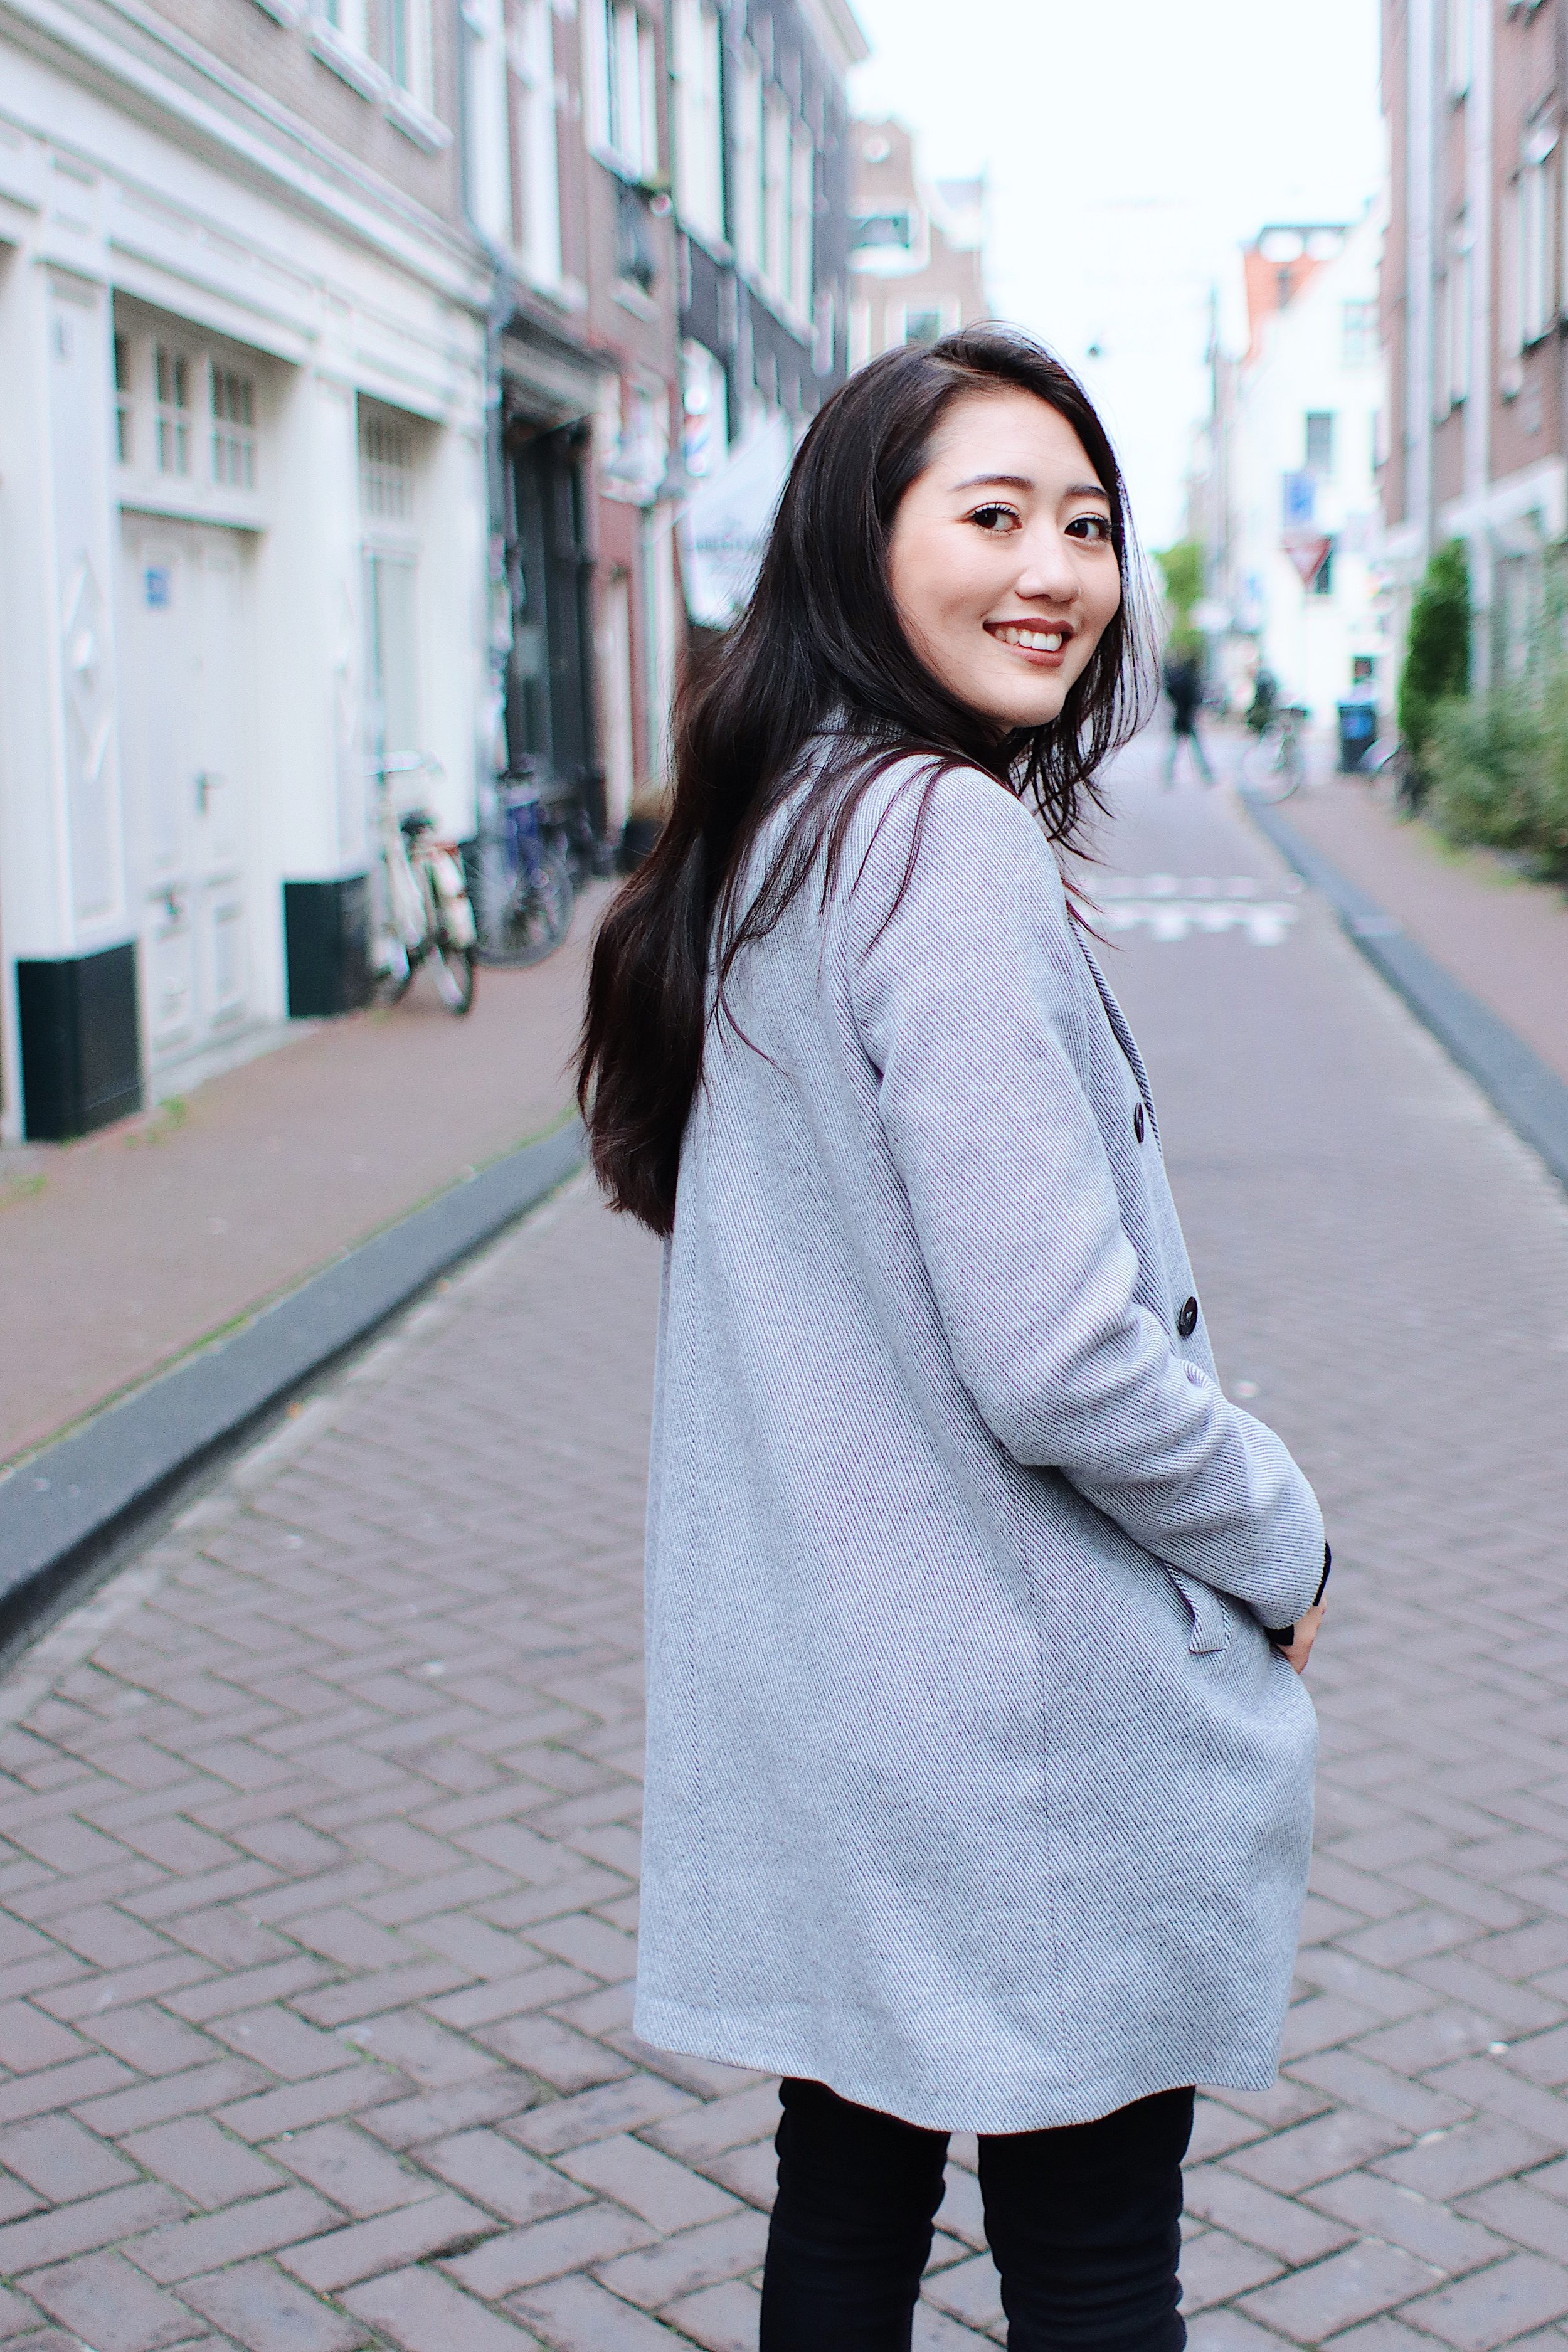 Photo Session in Amsterdam - Put on your favourite outfit and follow me through the scenic (and some secret) streets of Amsterdam, while I photograph that pretty face of yours!